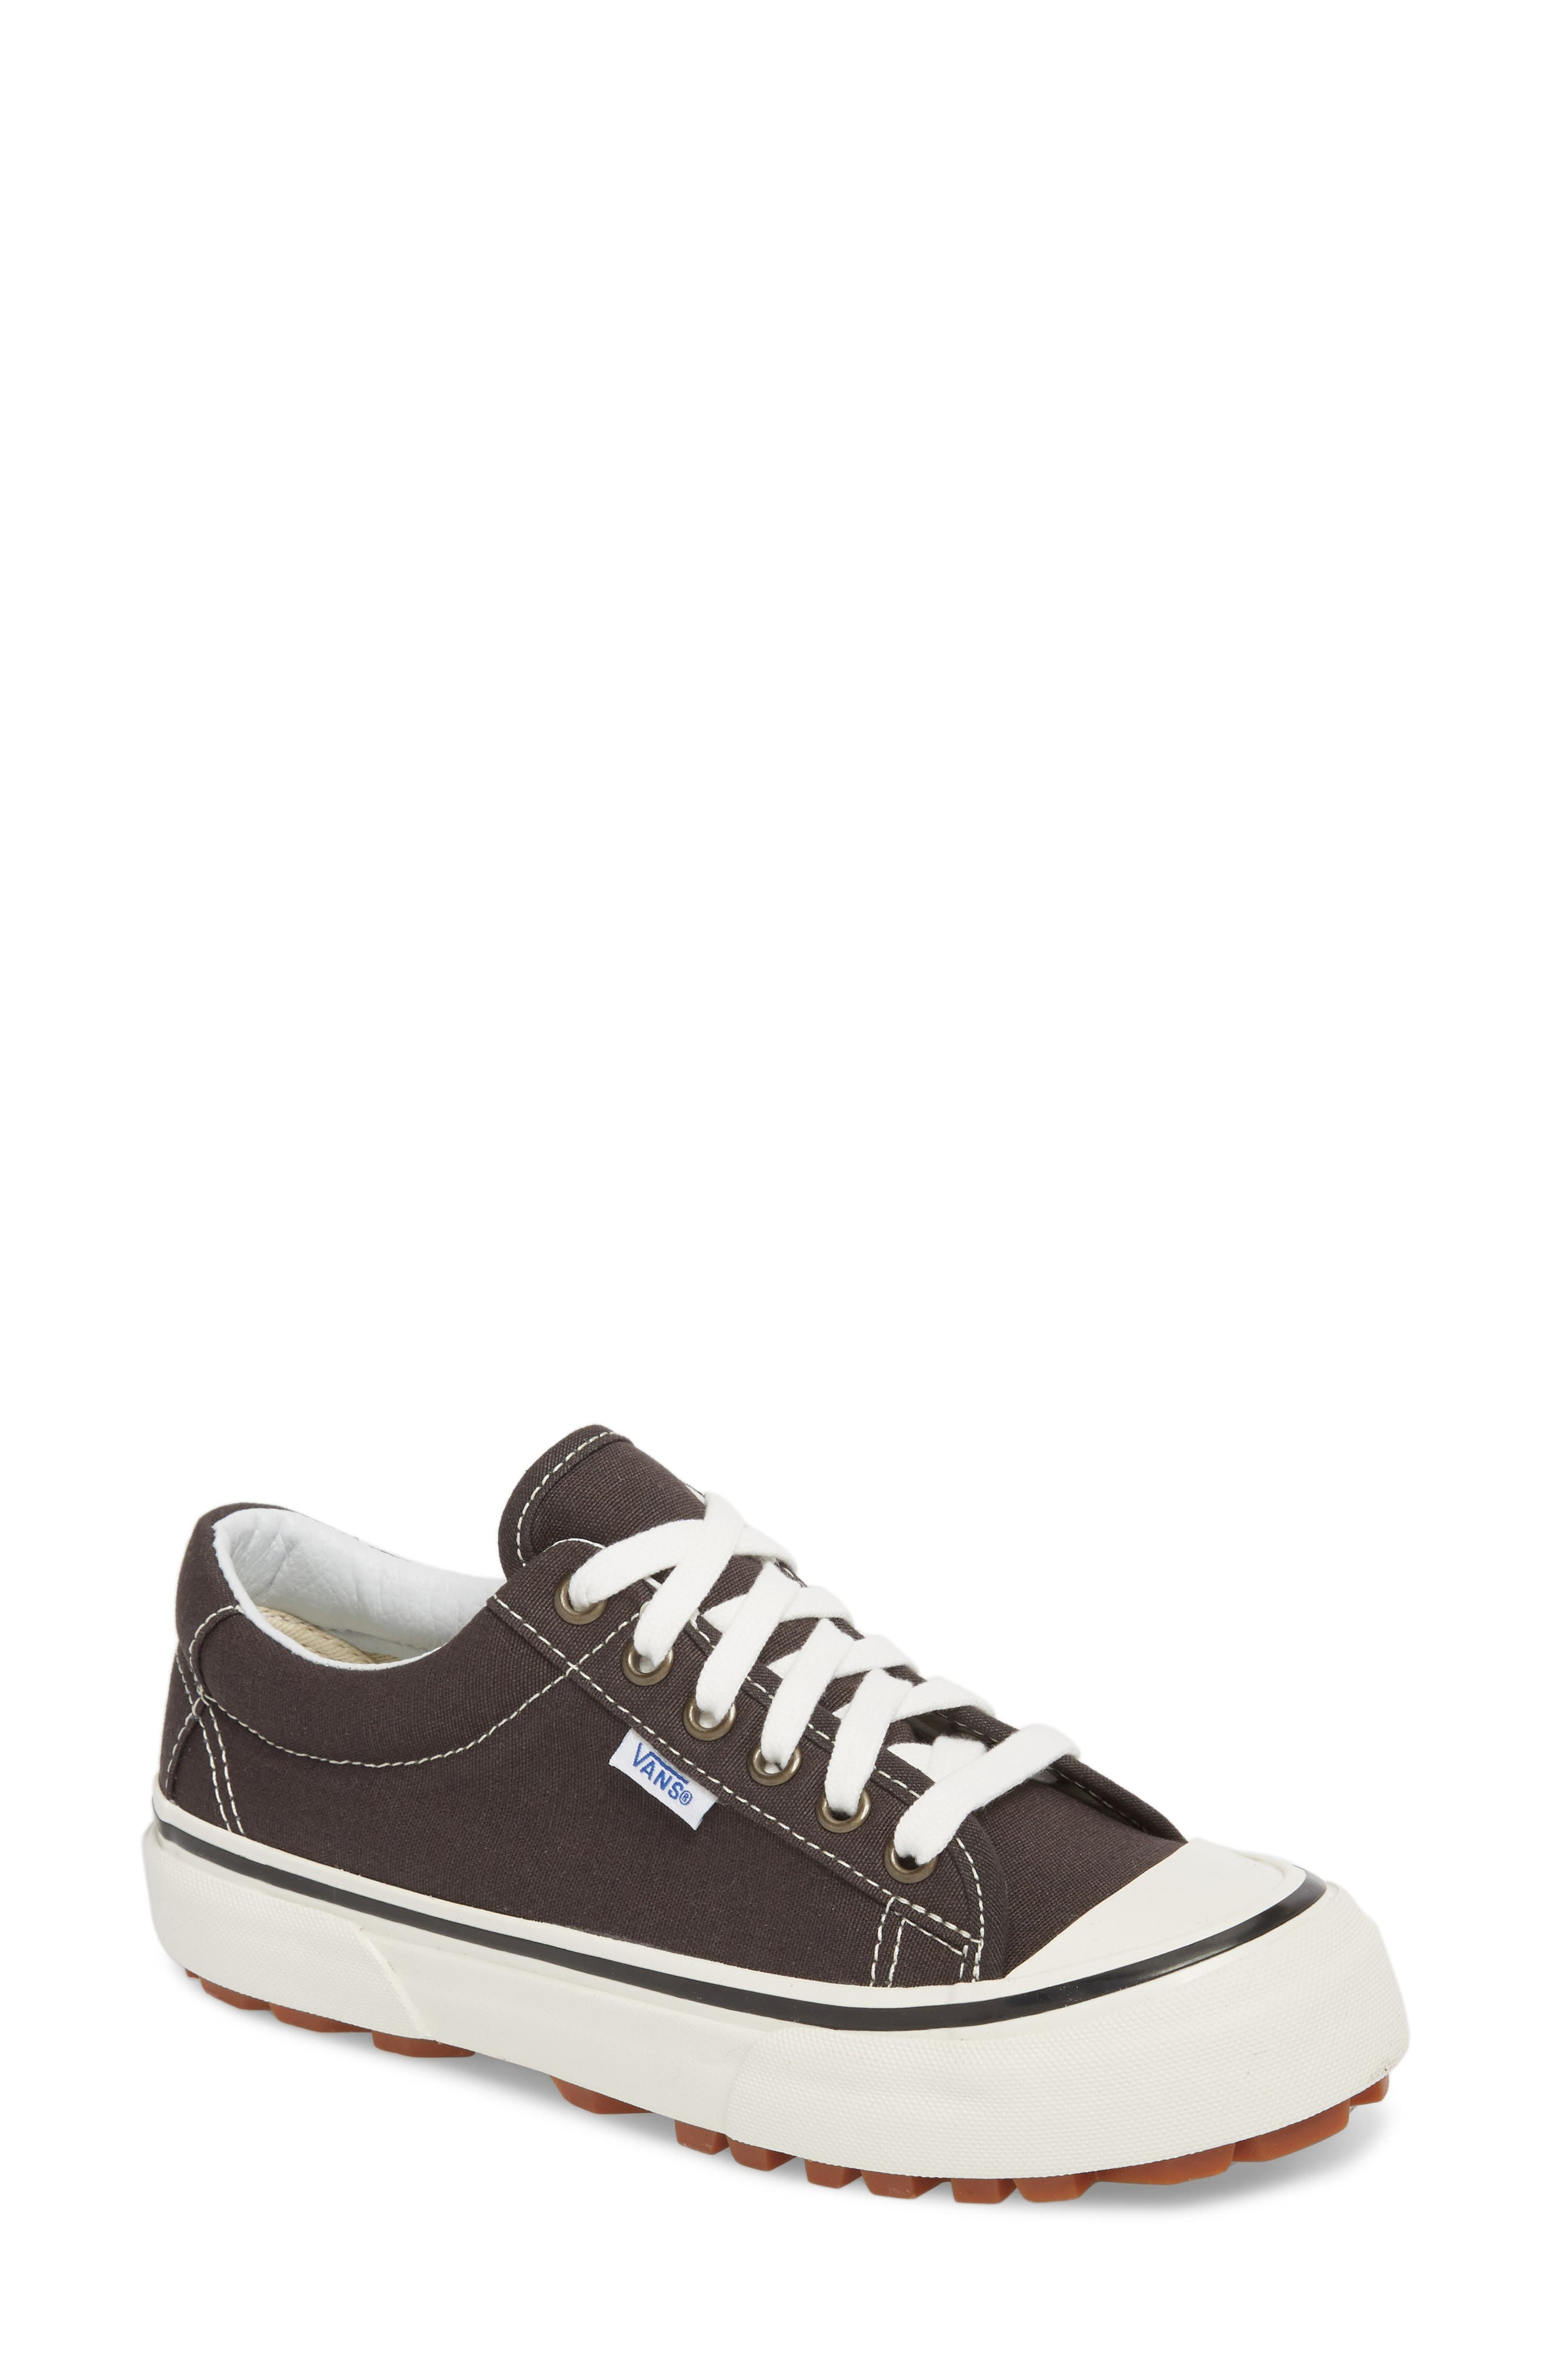 Anaheim Factory Style 29 DX Sneaker,                         Main,                         color, 001